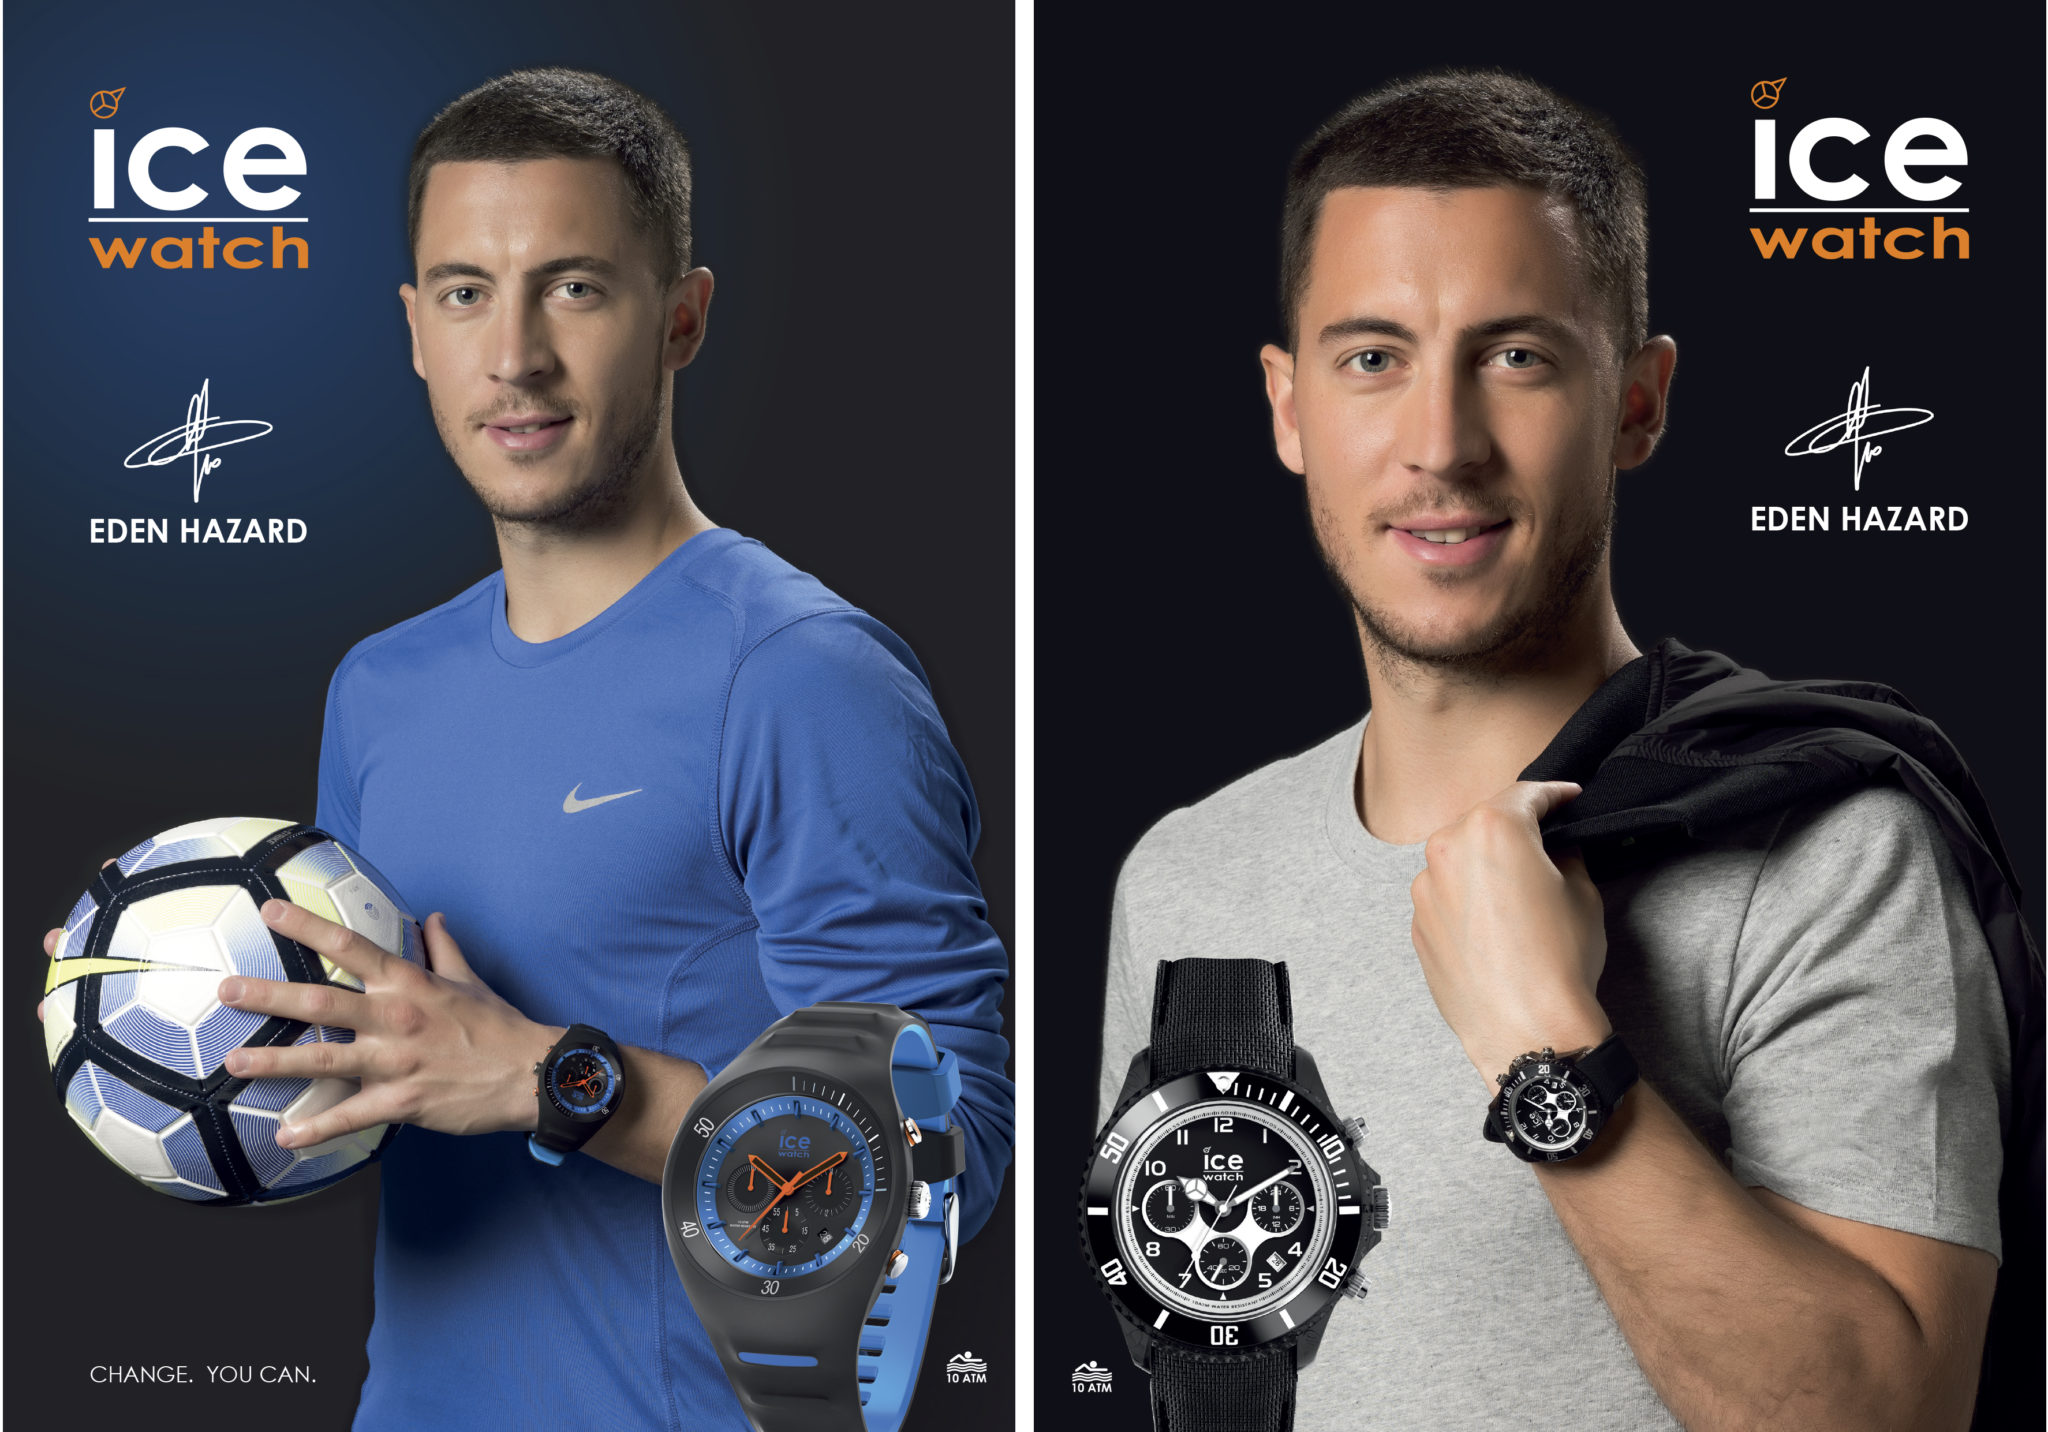 Ice-Watch-EDEN-HAZARD